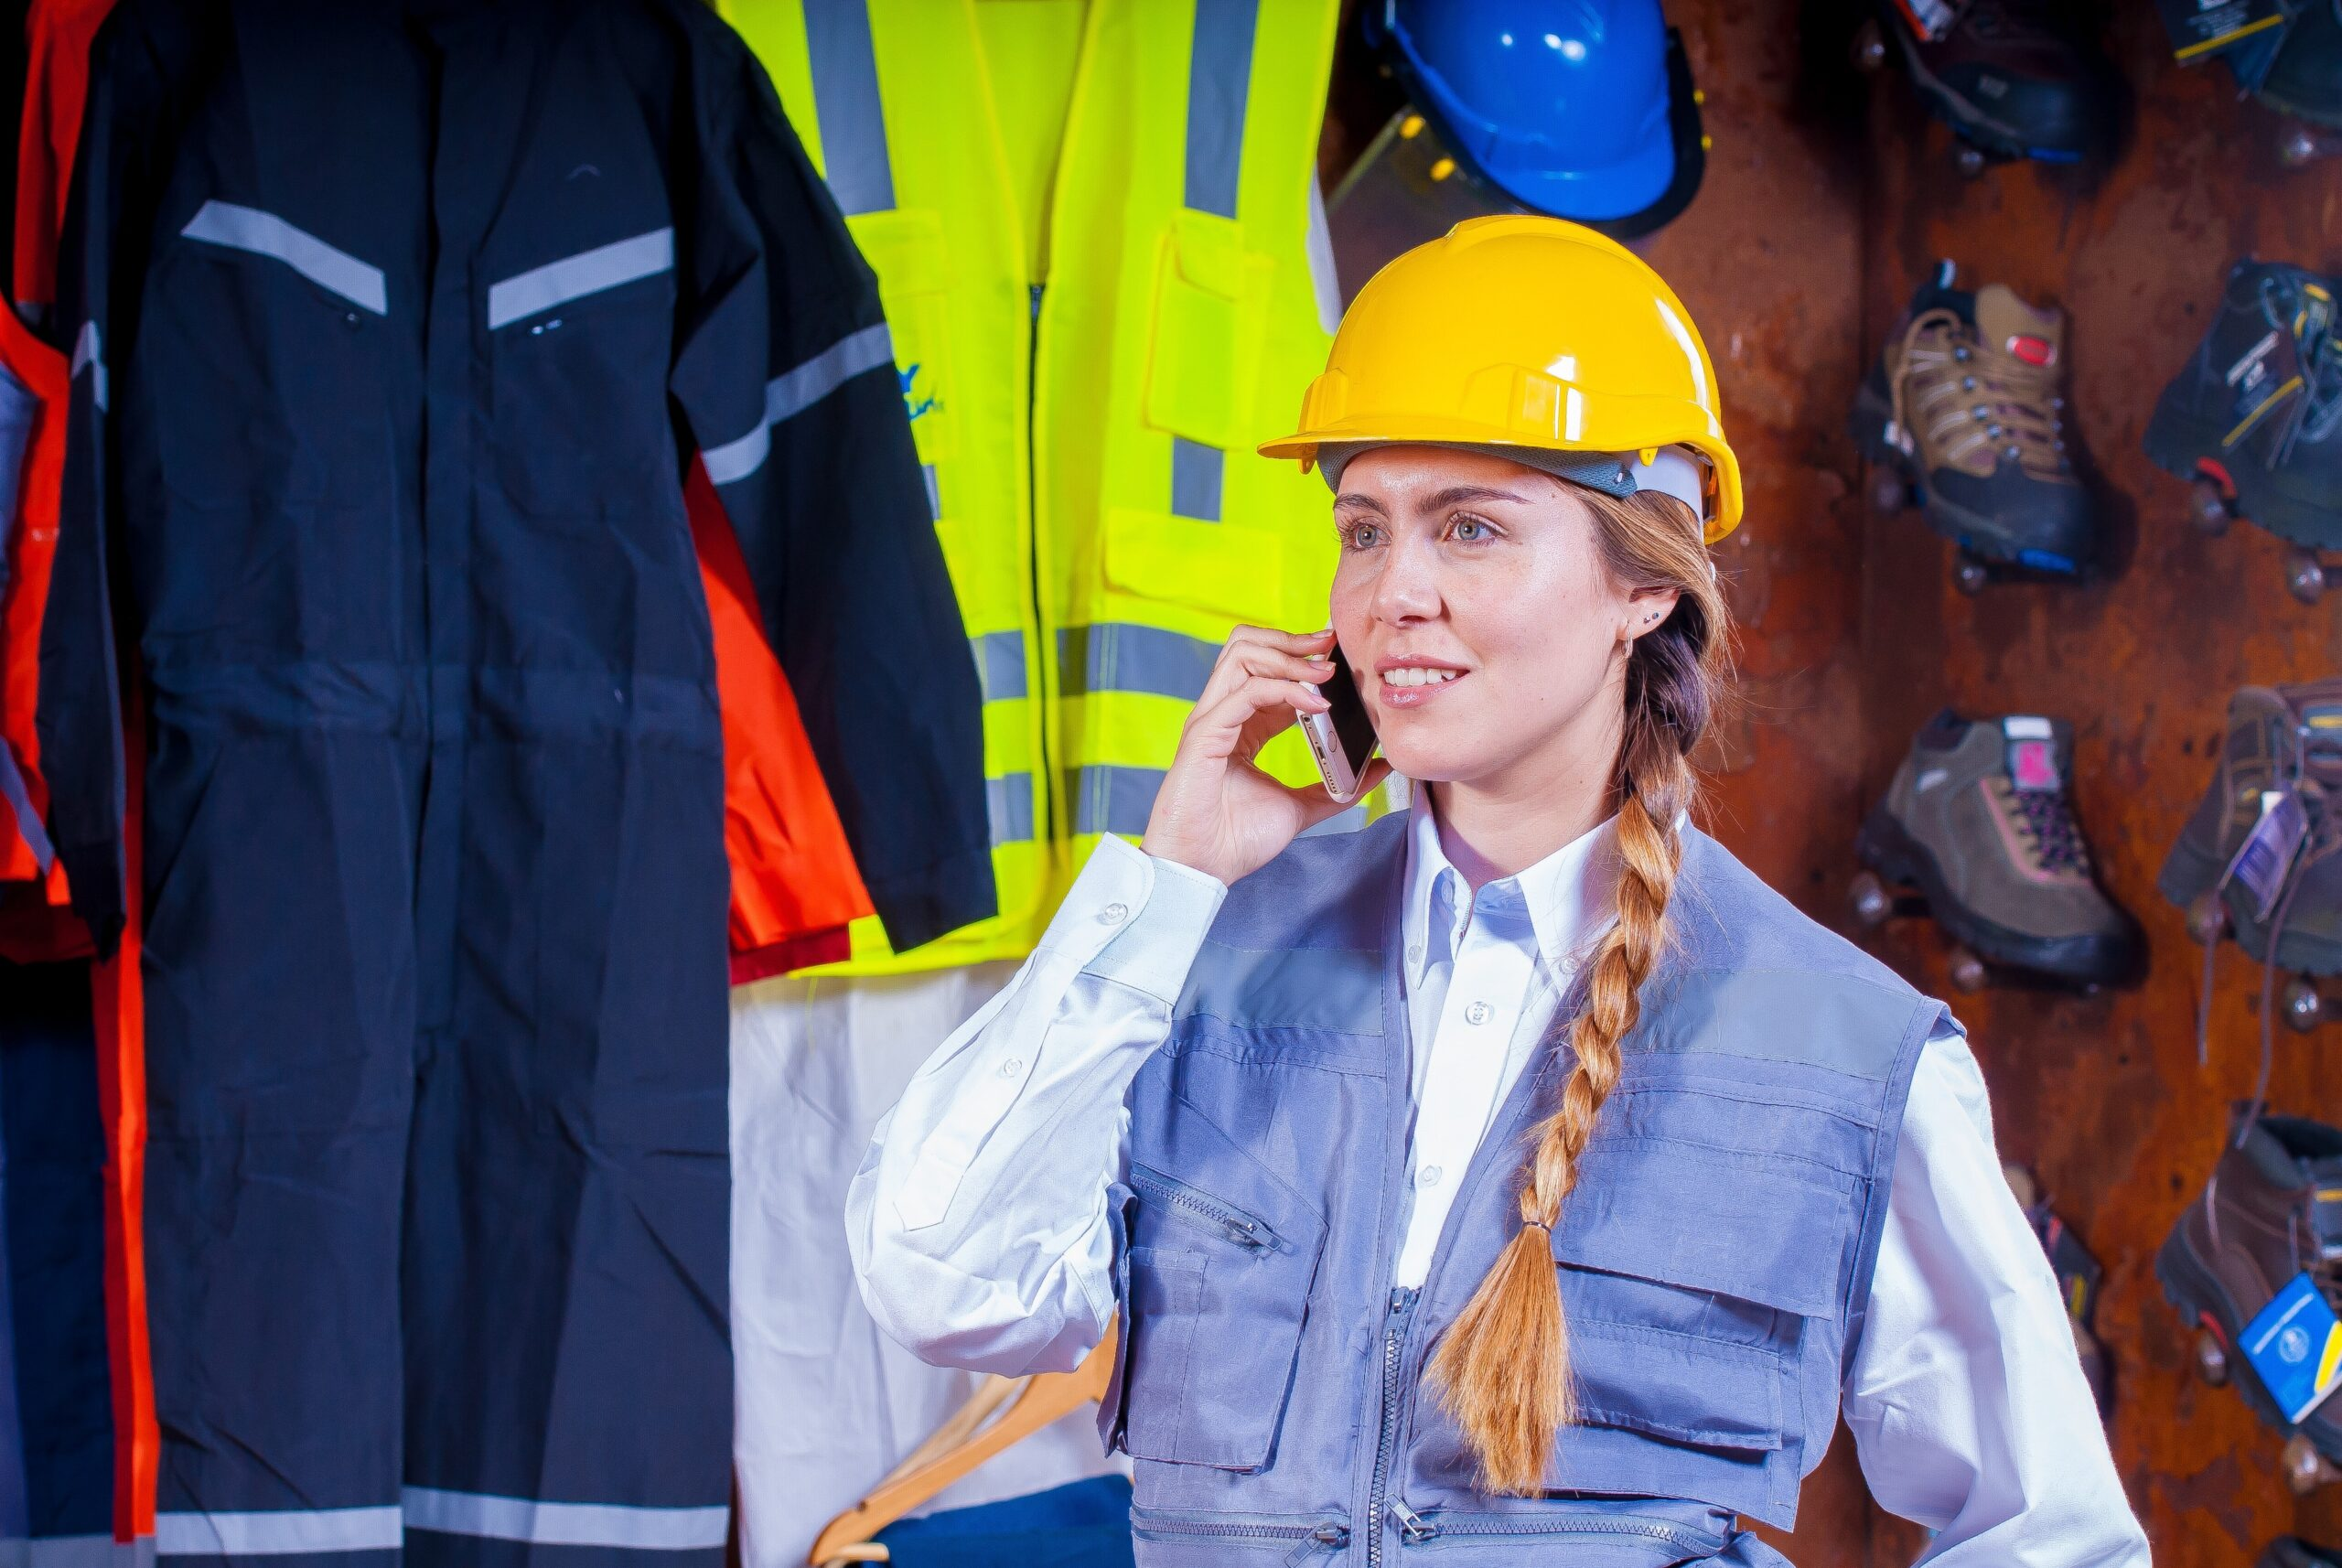 A person wearing a yellow hard hat talks on a cell phone and stands in front of workplace safety equipment.